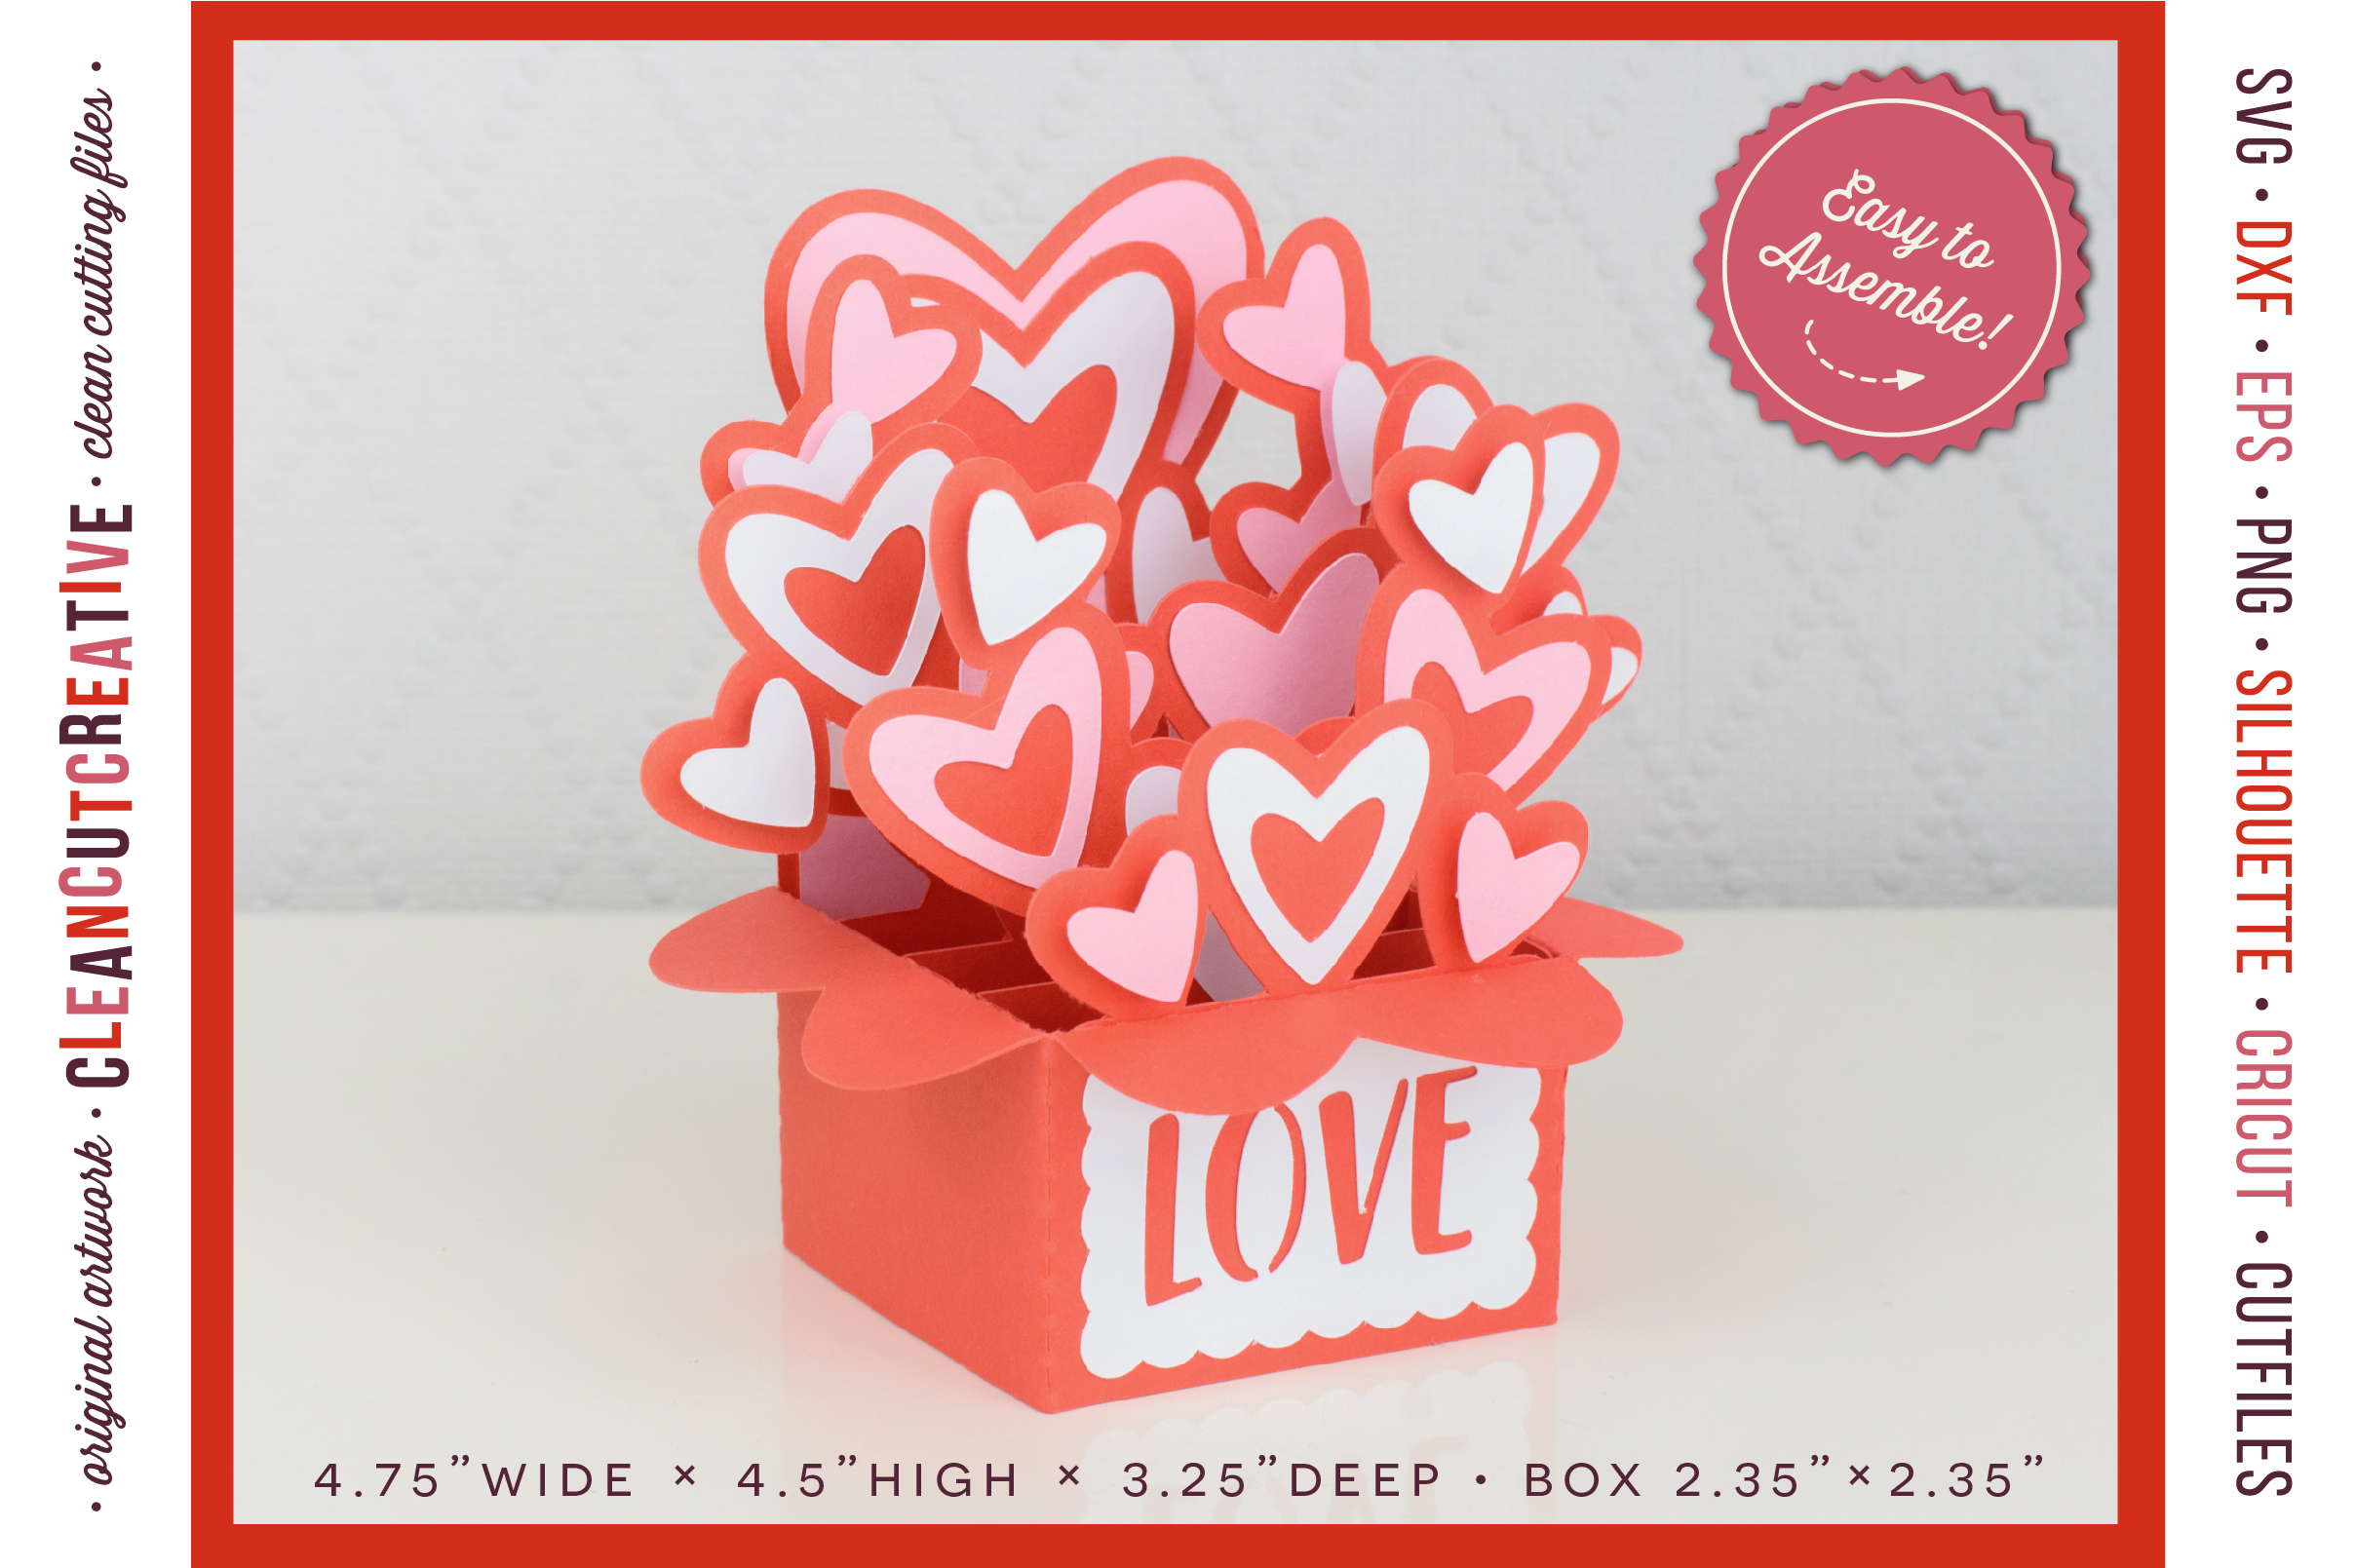 Love Box Card | Valentine Card in a Box with hearts 3D craft example image 2